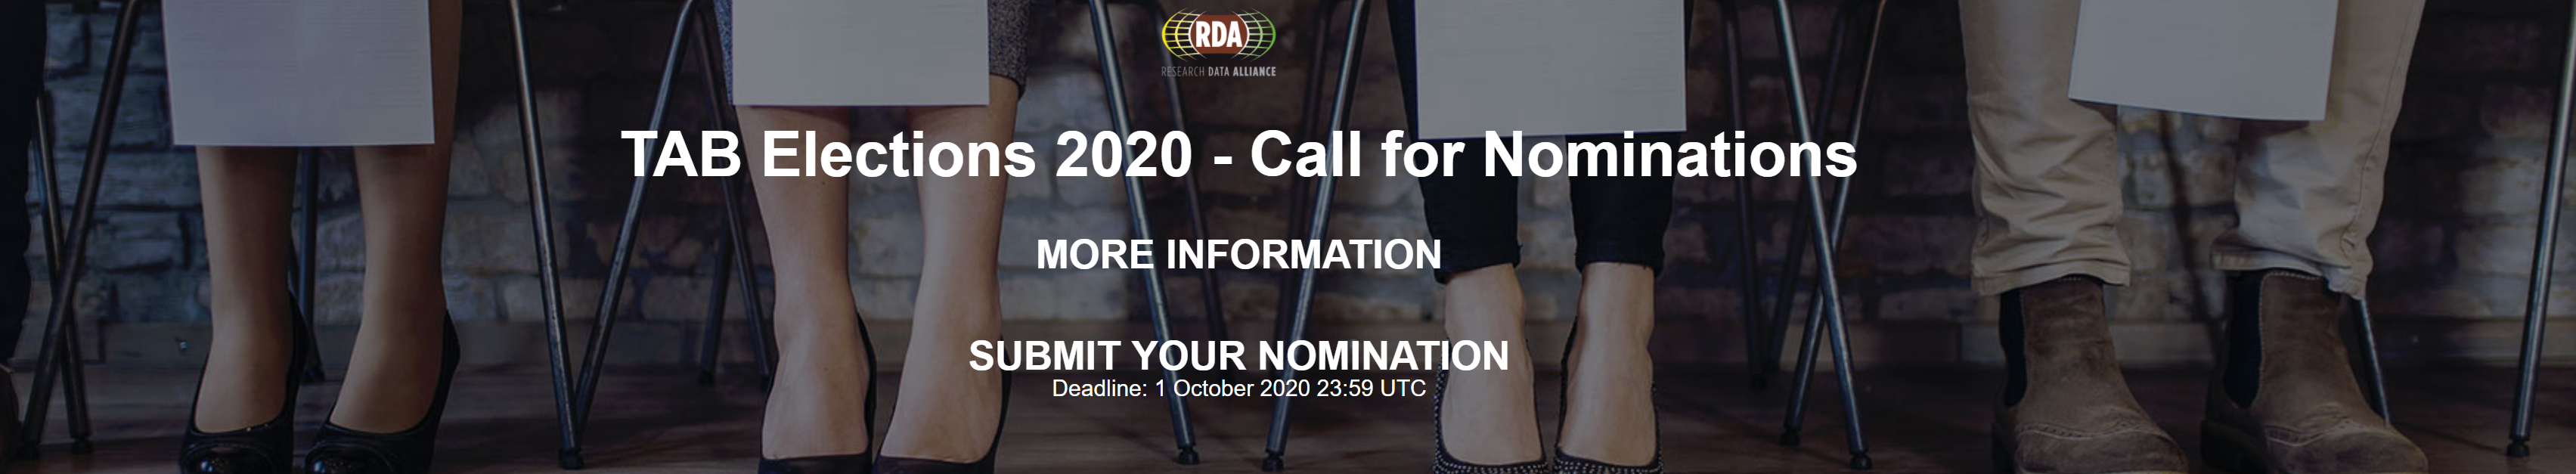 TAB Elections 2020: Call for Nominations now open!